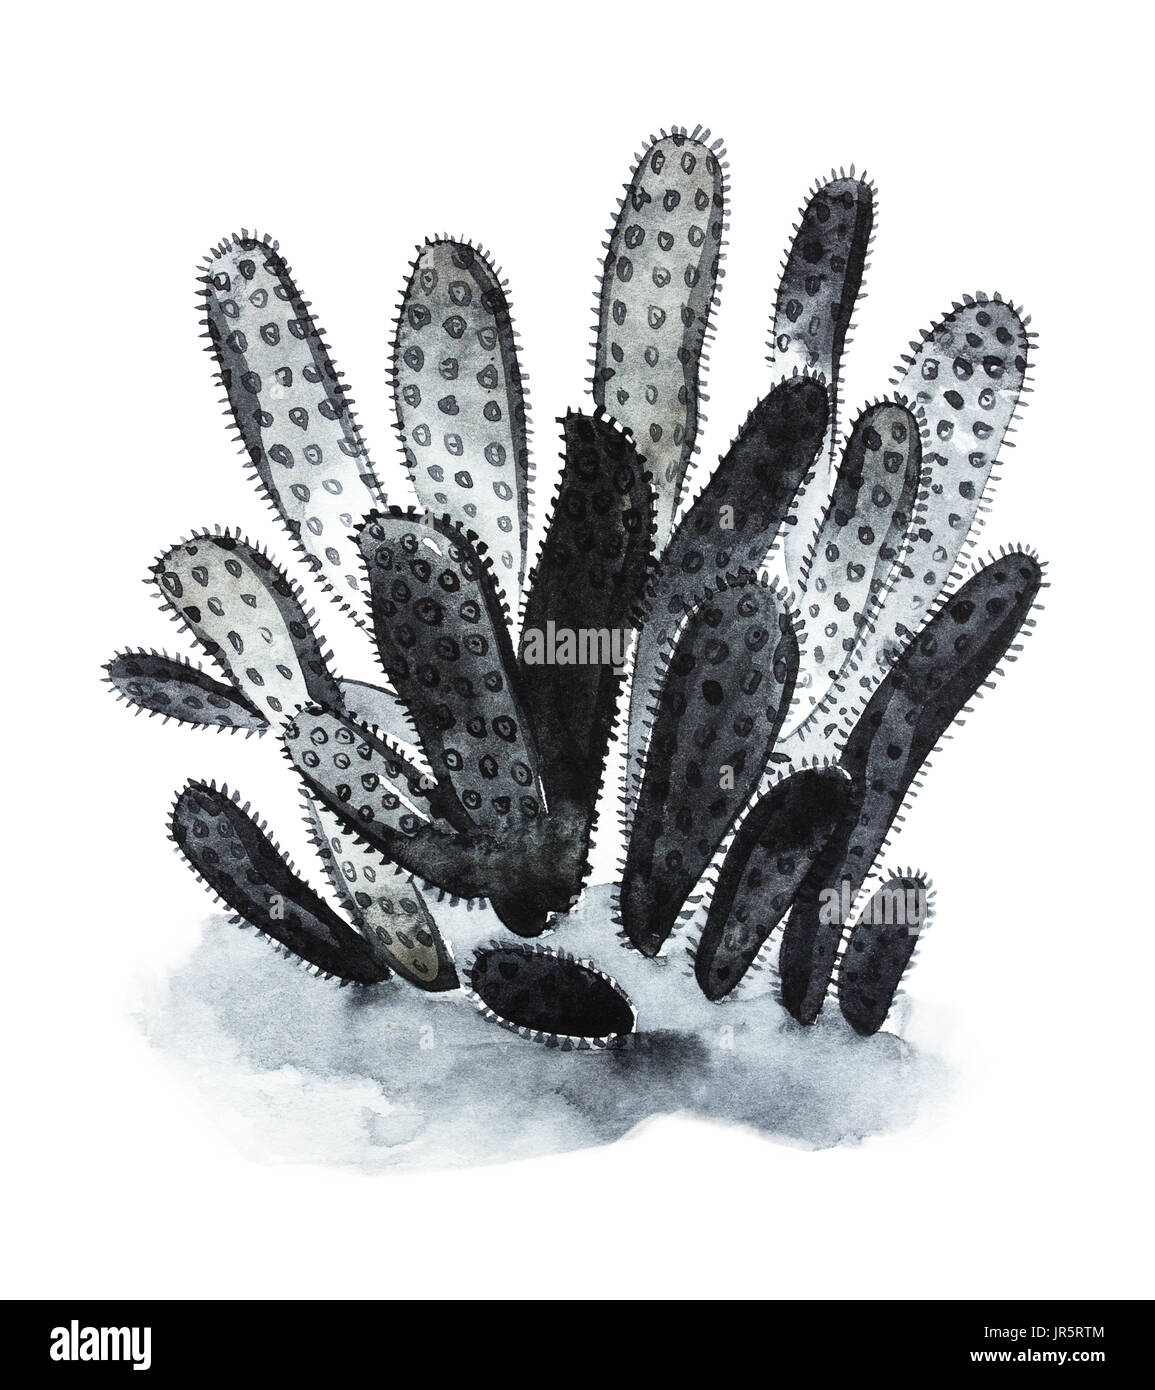 Black corals sea life object isolated on white background. Watercolor hand drawn painted illustration. Underwater watercolor background illustration. - Stock Image